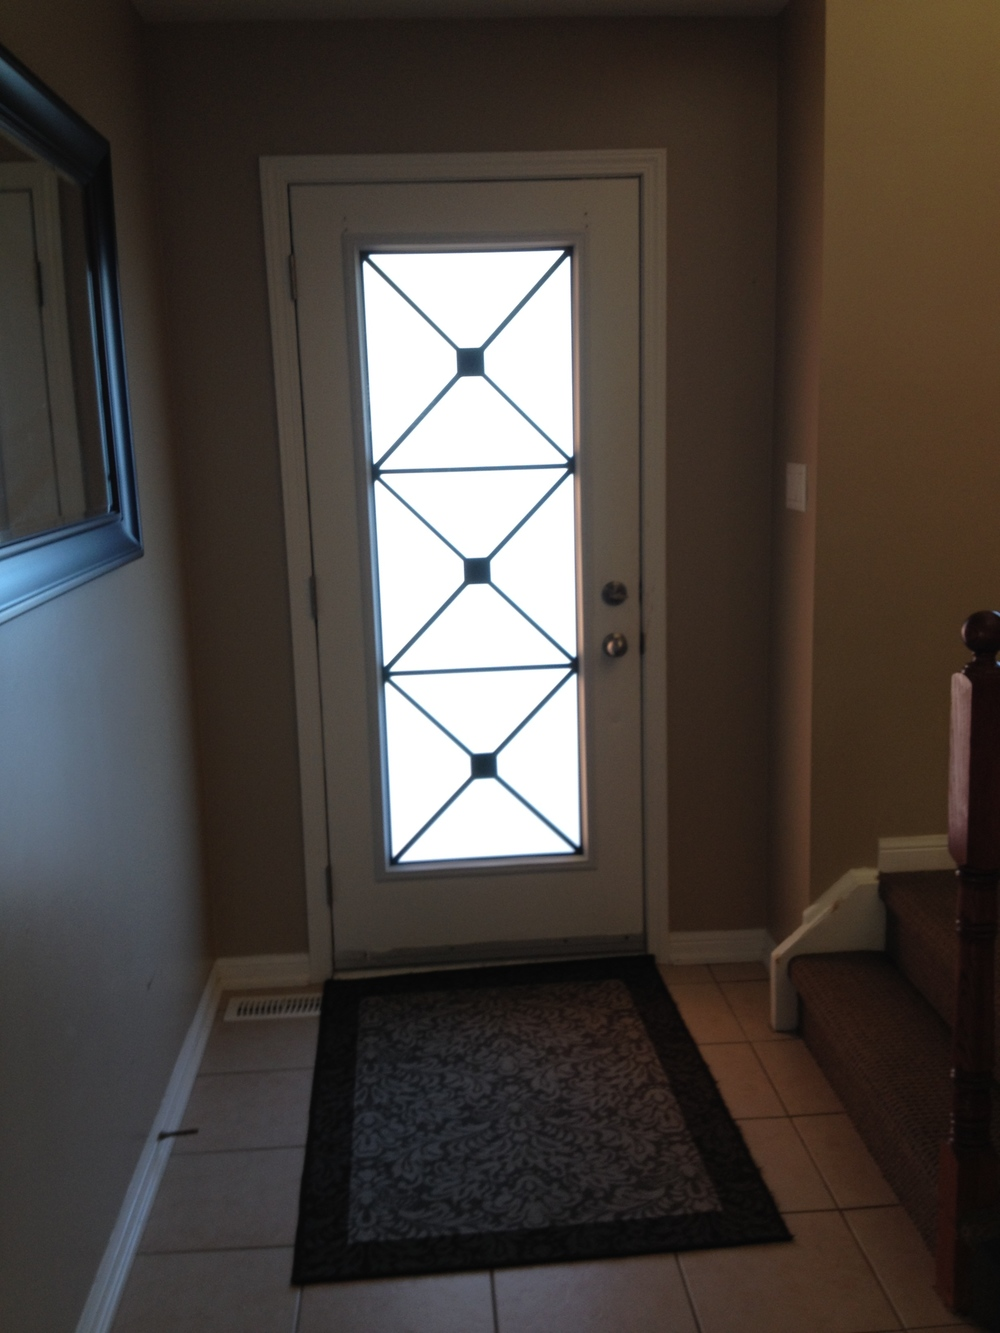 x-design-wrought-iron-glass-door-inserts-Richmond-Hill-Ontario